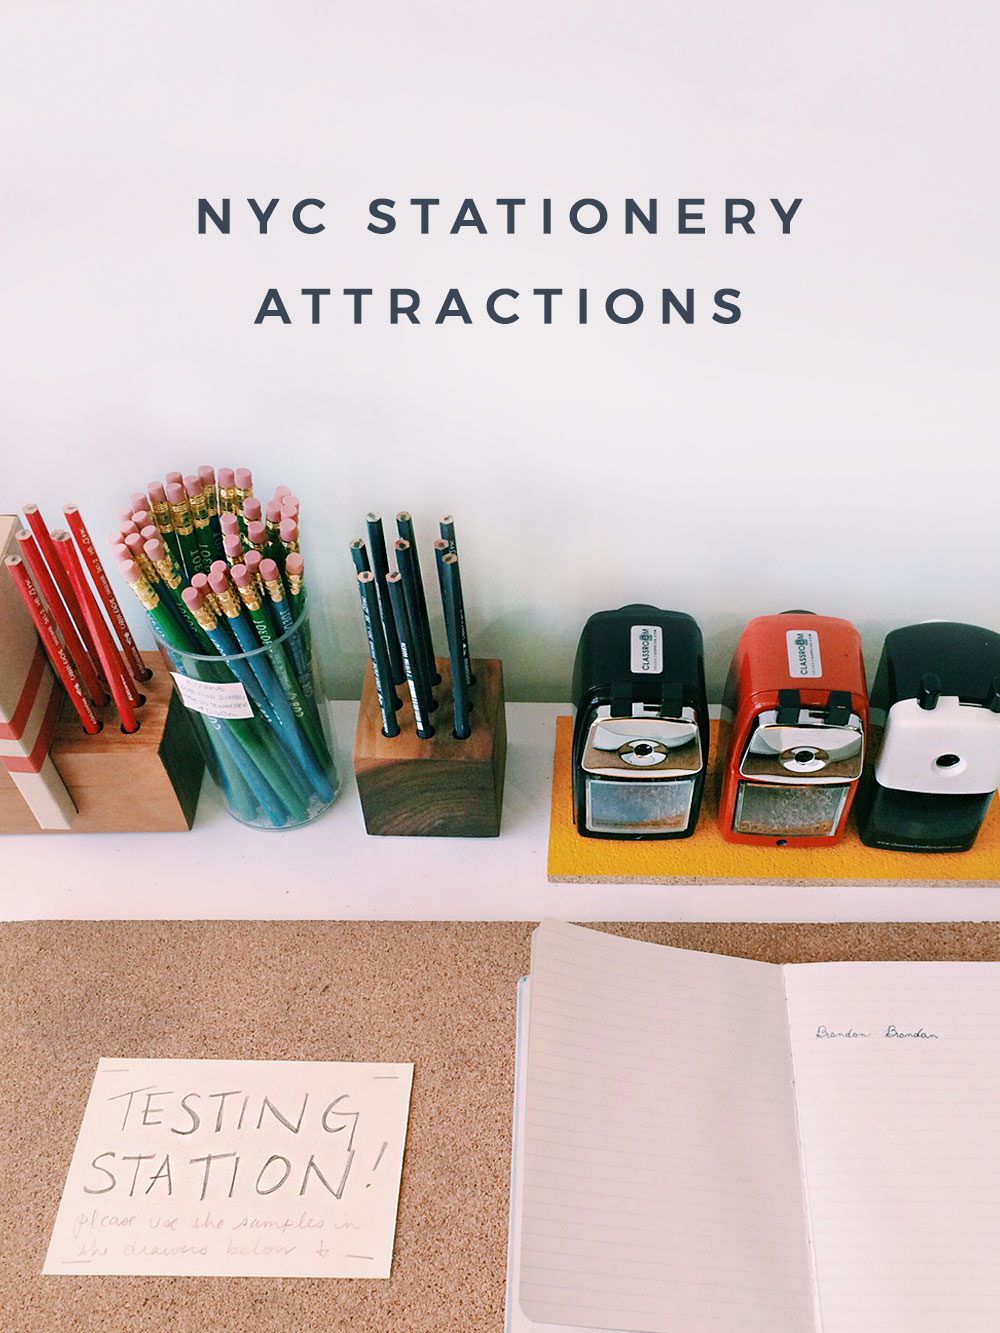 Nyc Stationery Attractions Owl Ink